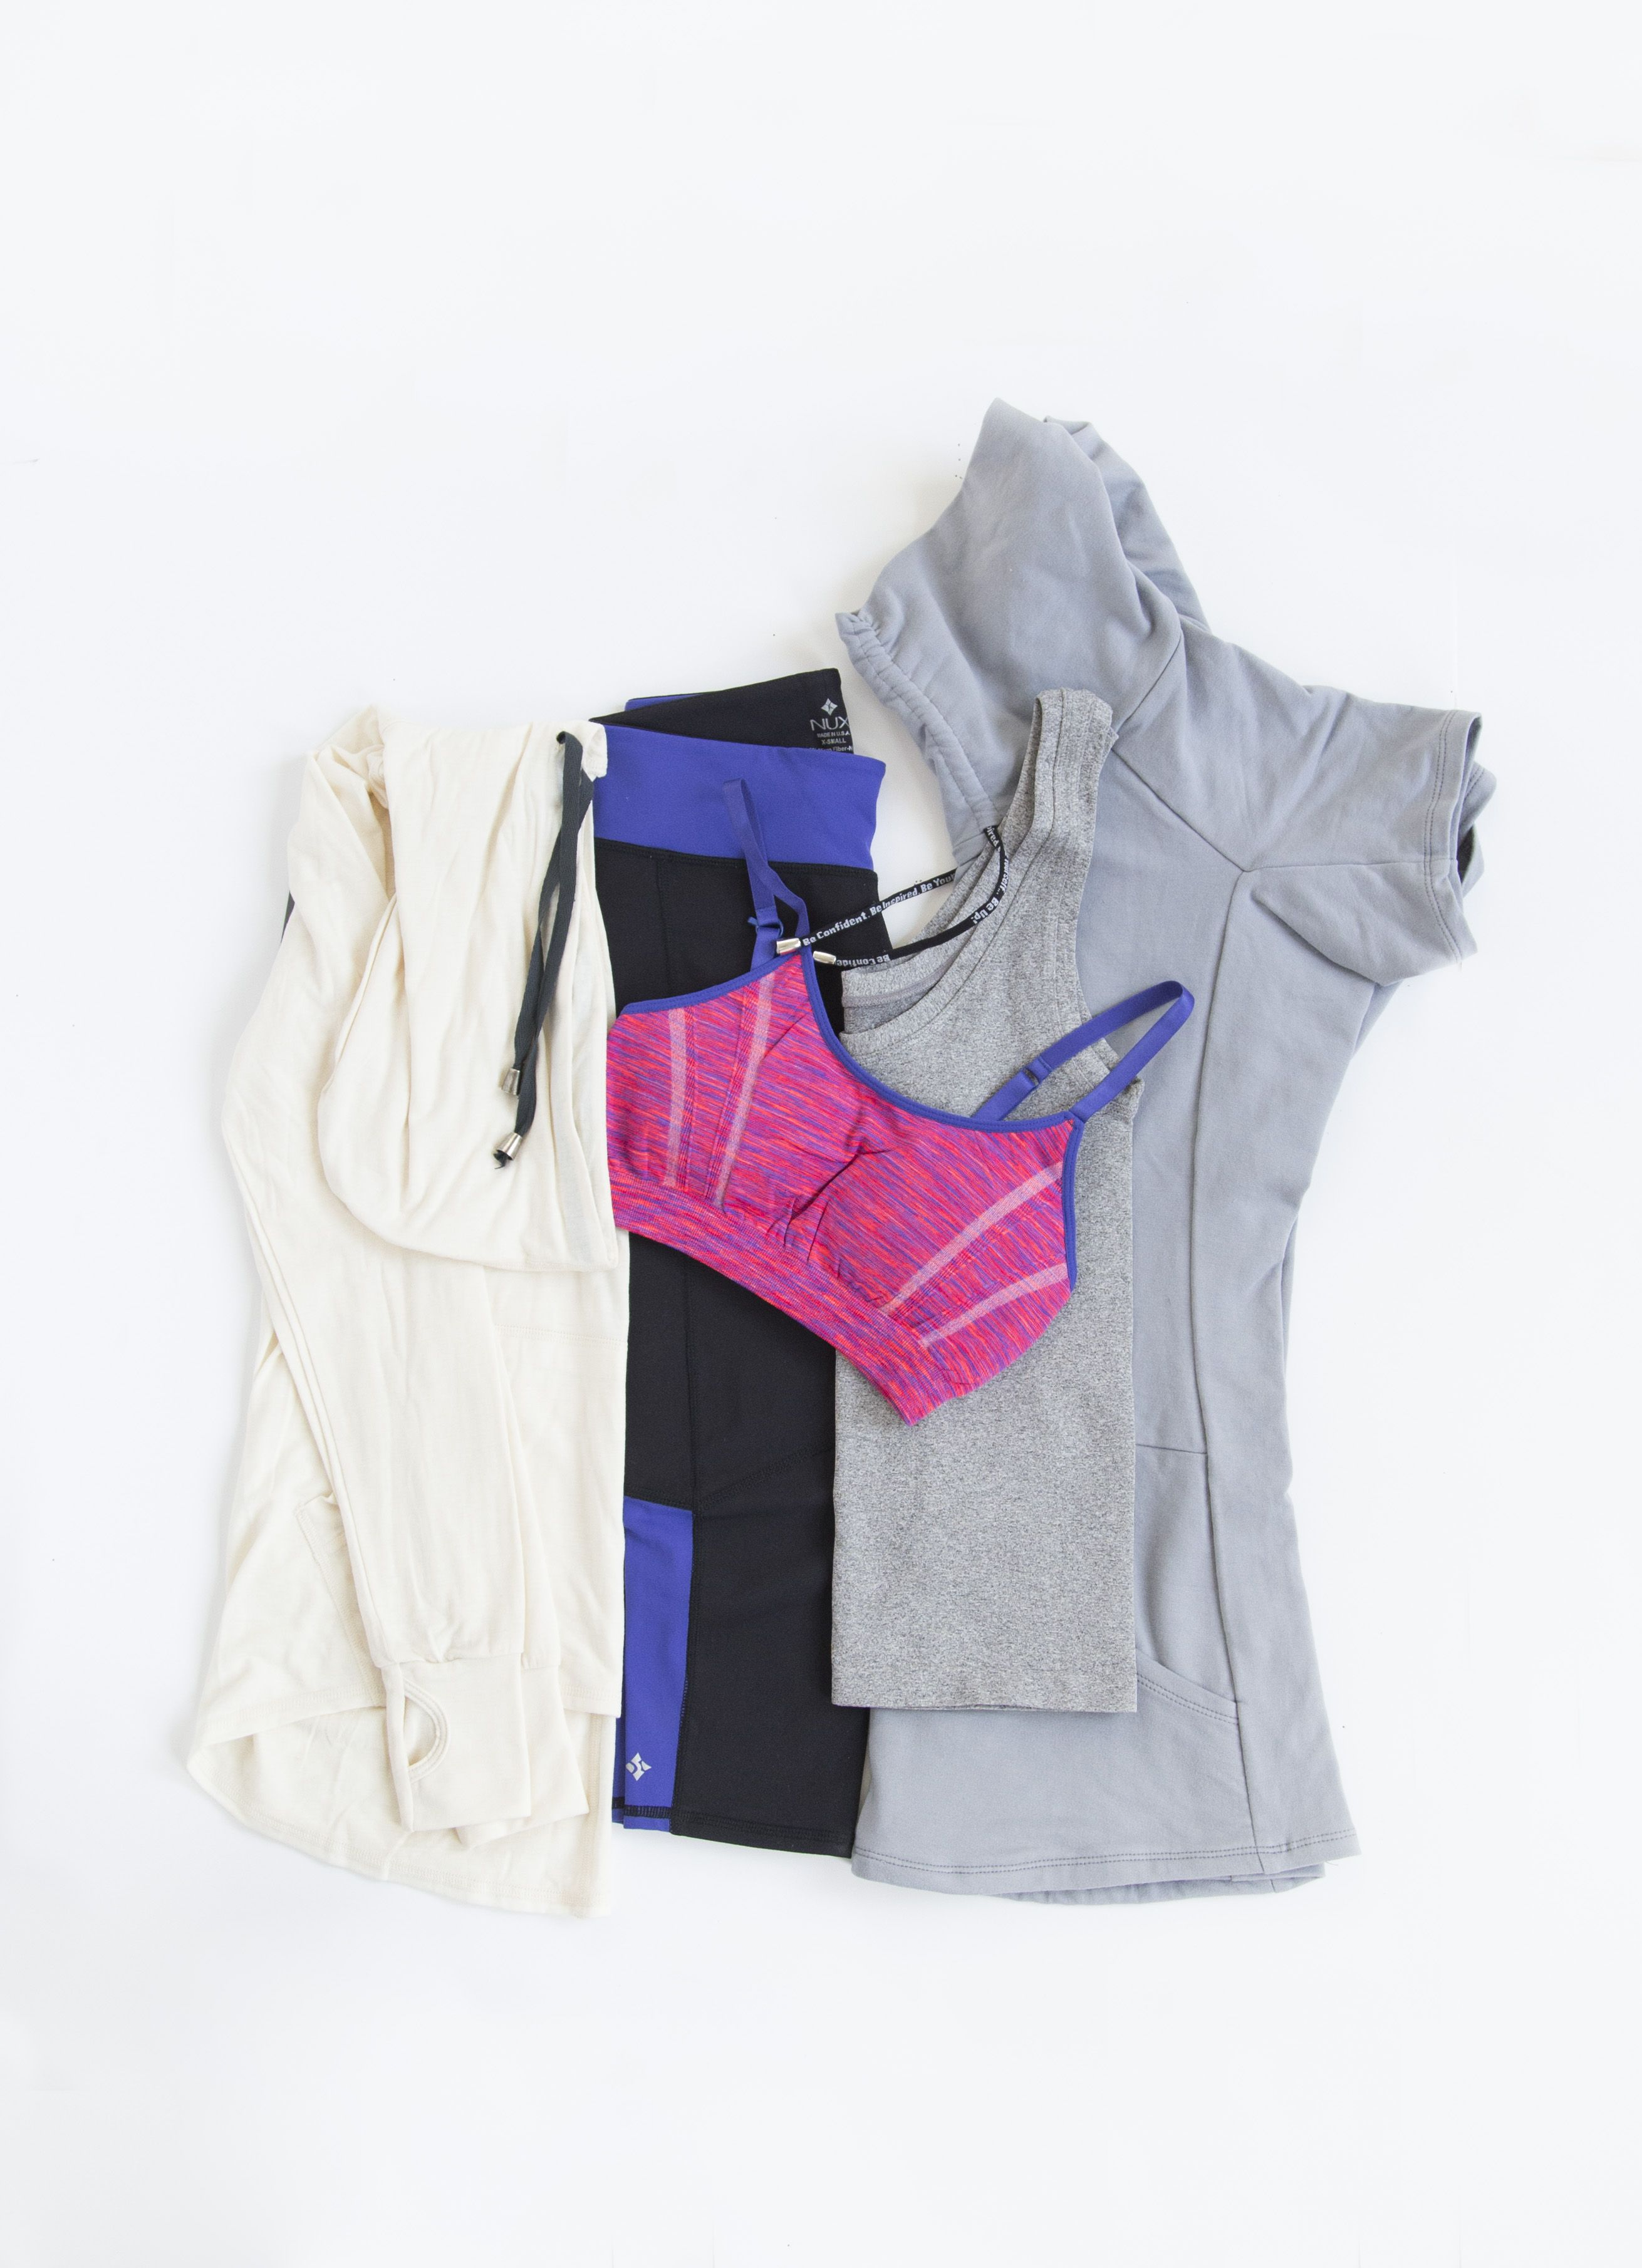 Try 5 premium fitness apparel items at home and only pay for what you keep! https://www.wantable.com/edits/fitness